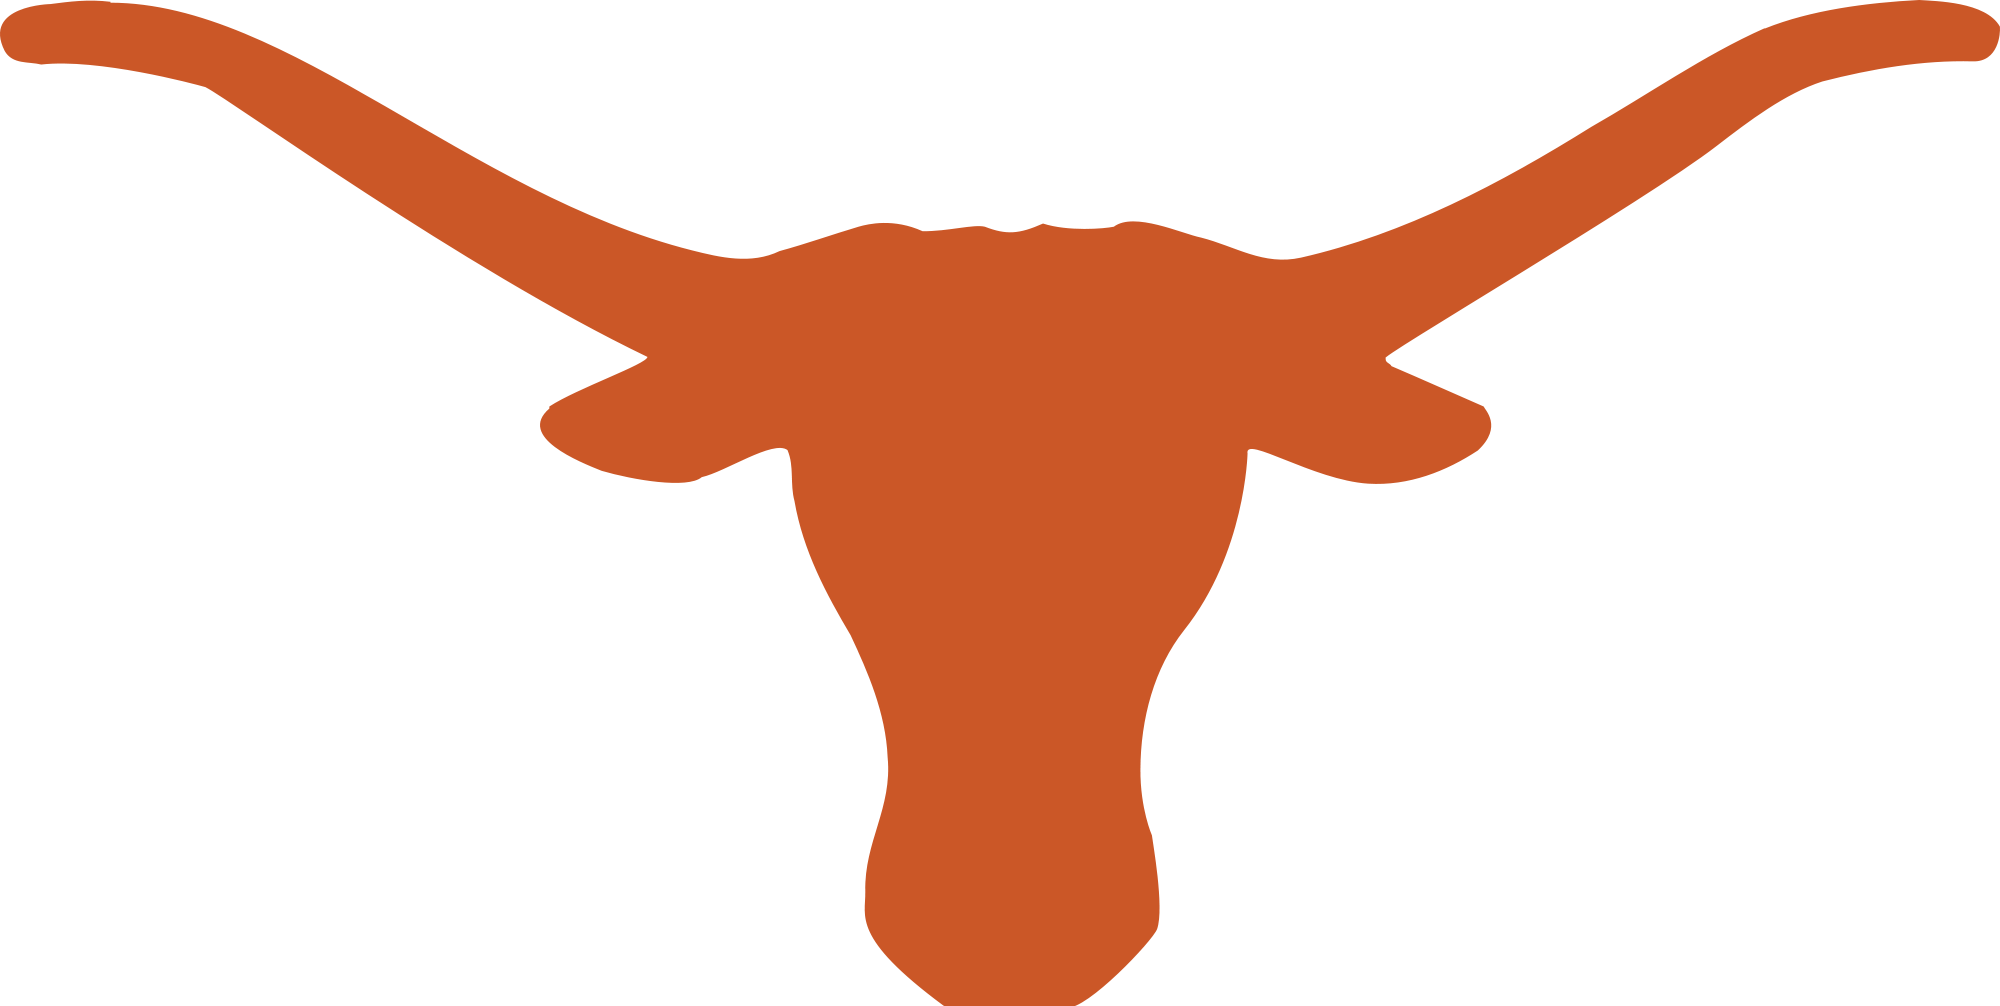 Univ  Of Texas  What Is A Good Gmat Score To Get Into Univ  Of Texas